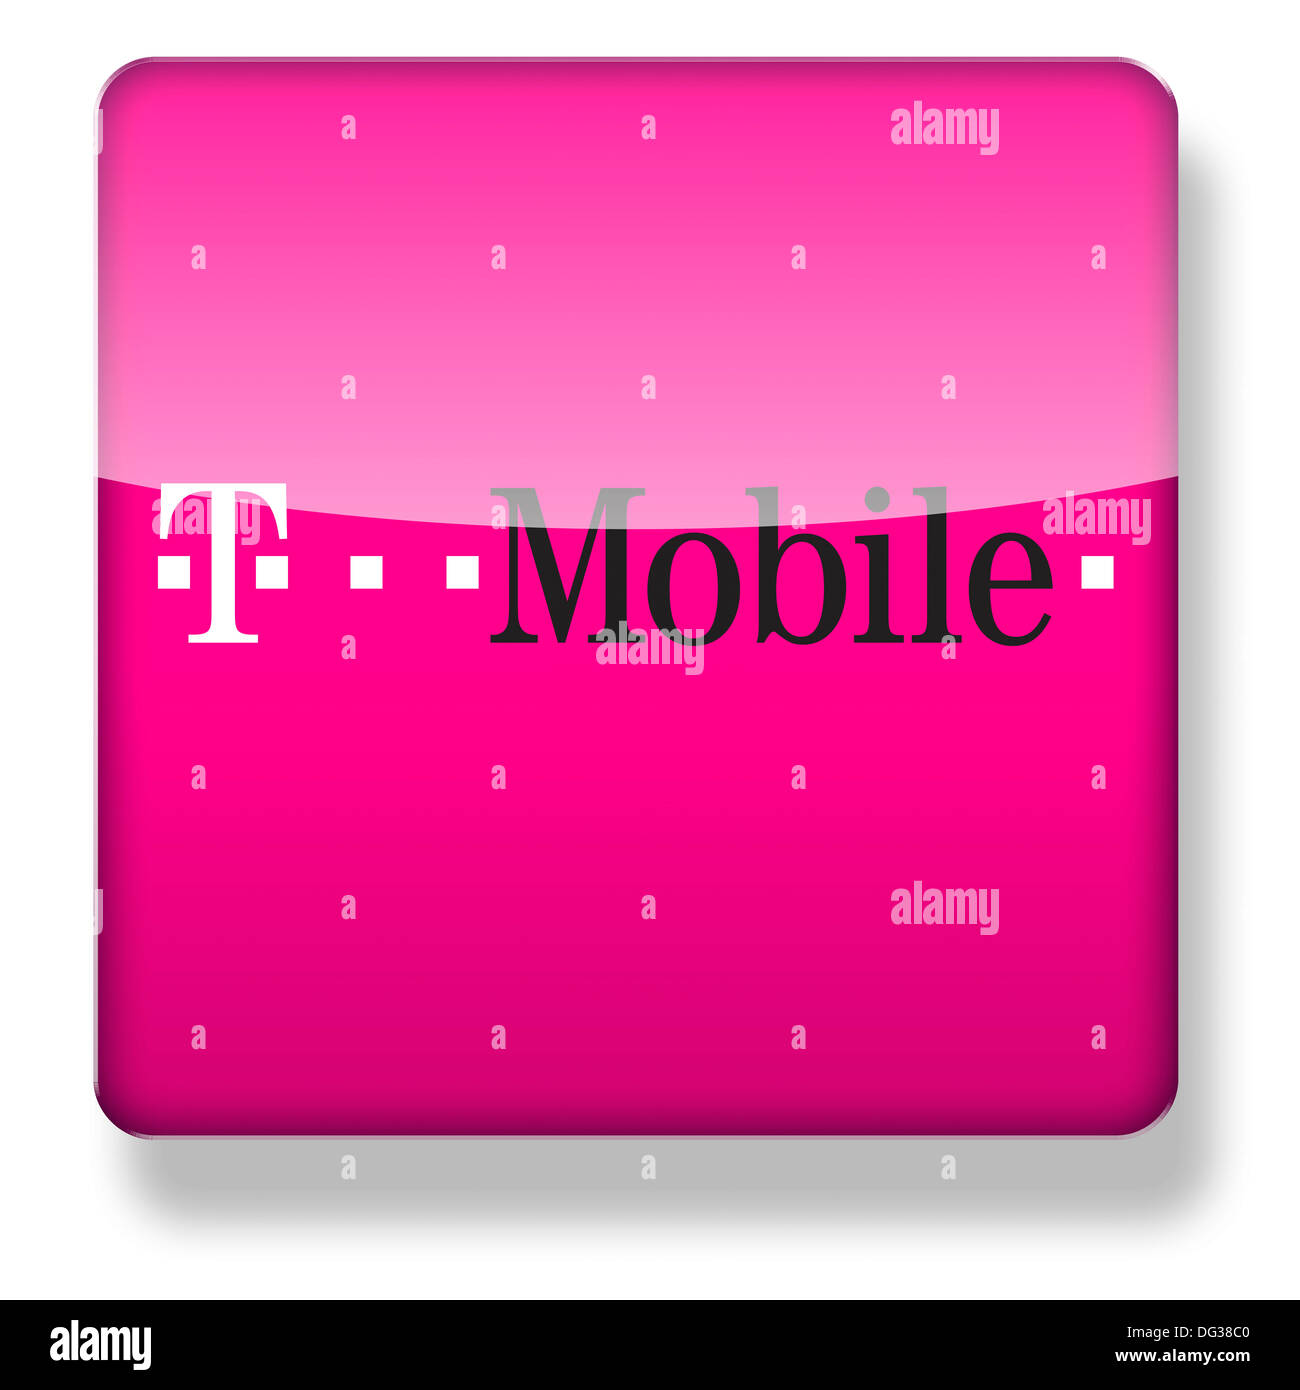 T Mobile Logo As An App Icon Clipping Path Included Stock Photo